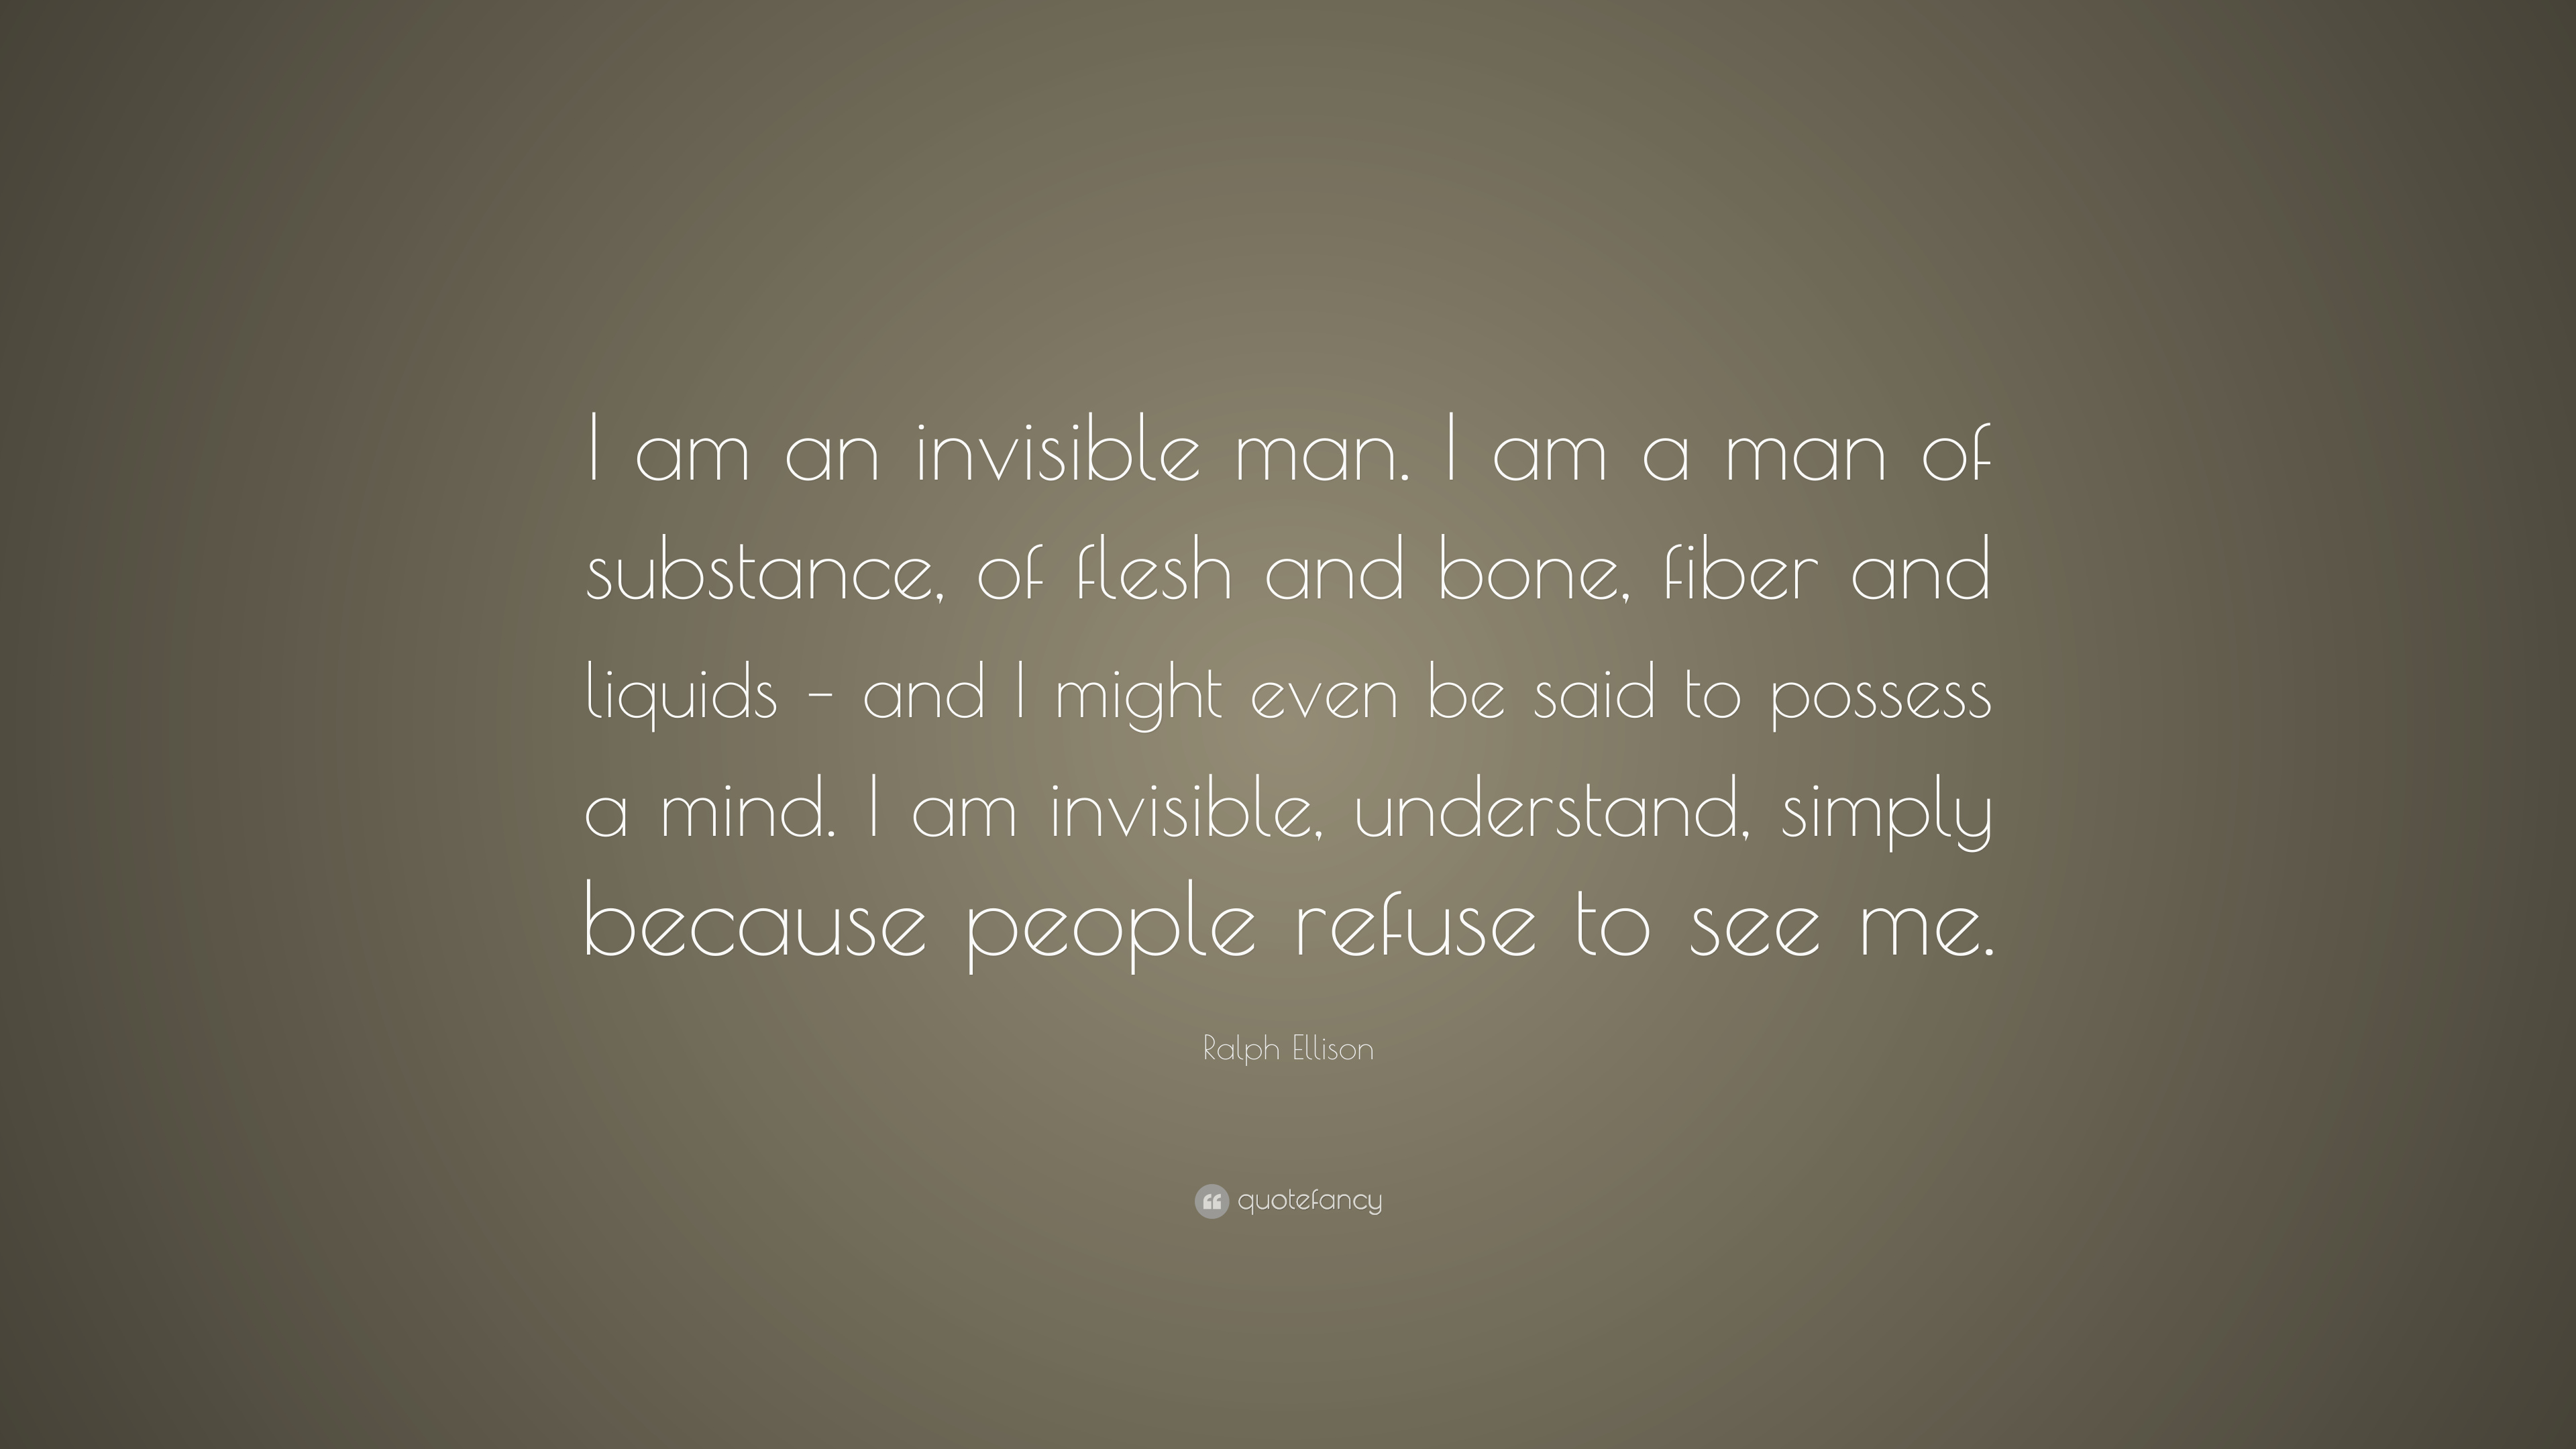 Invisible Man Quotes